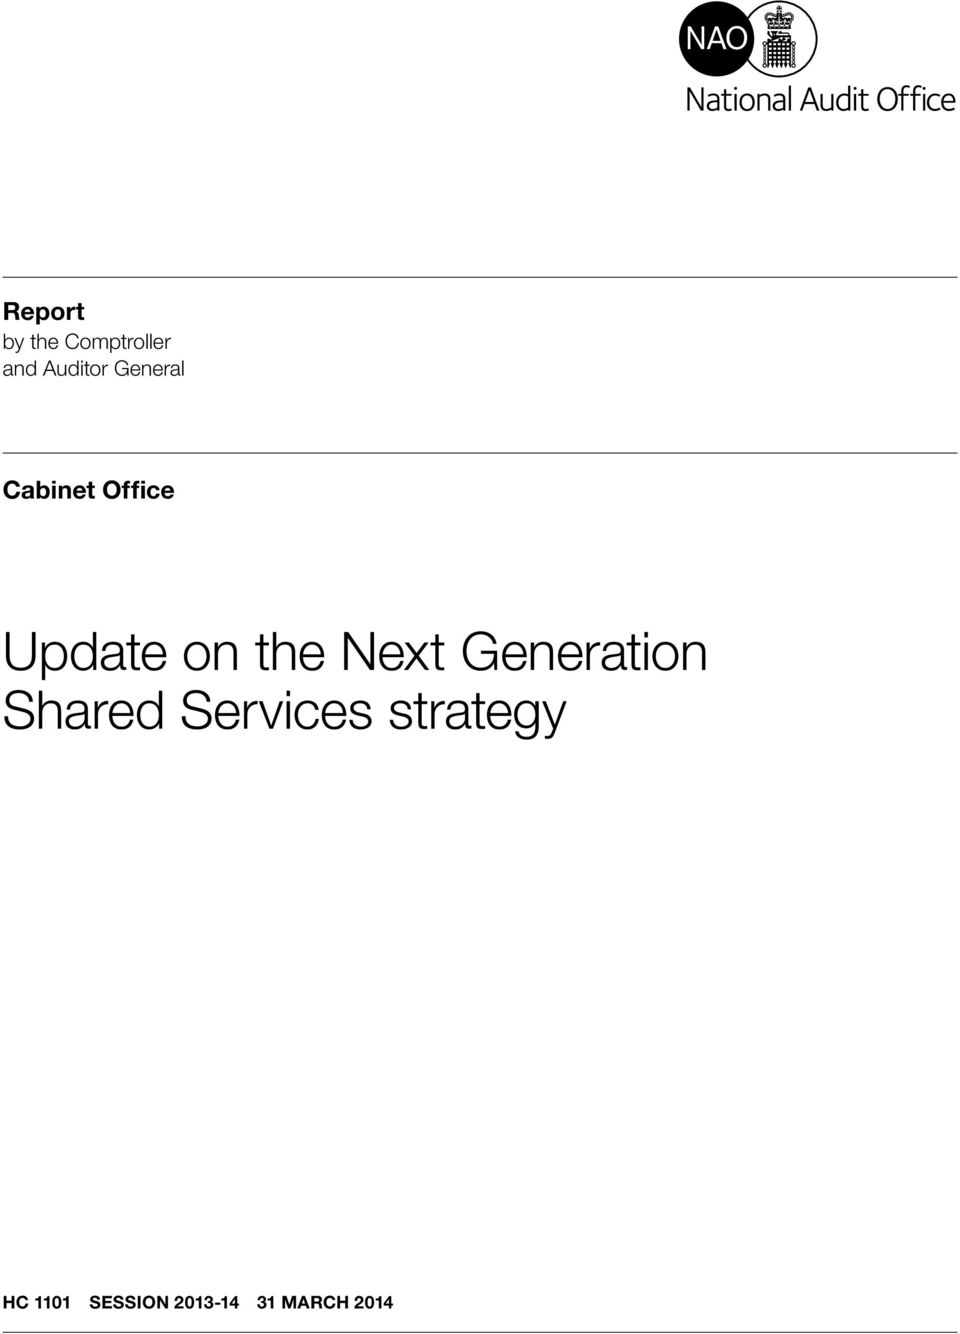 Next Generation Shared Services